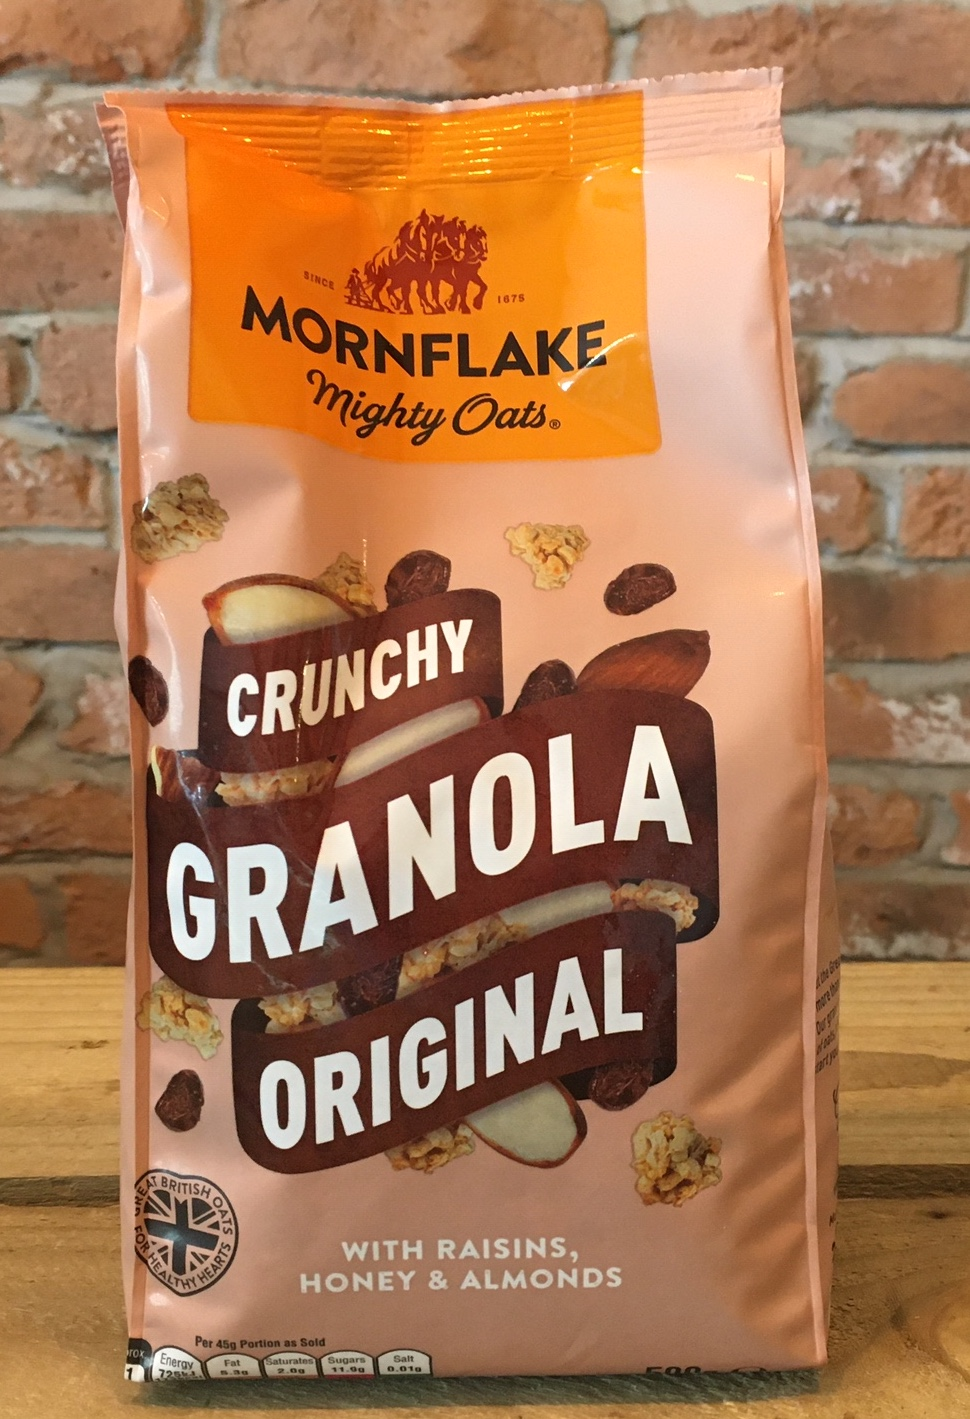 Crunchy Granola Original with Raisins, Honey & Almonds, 500g